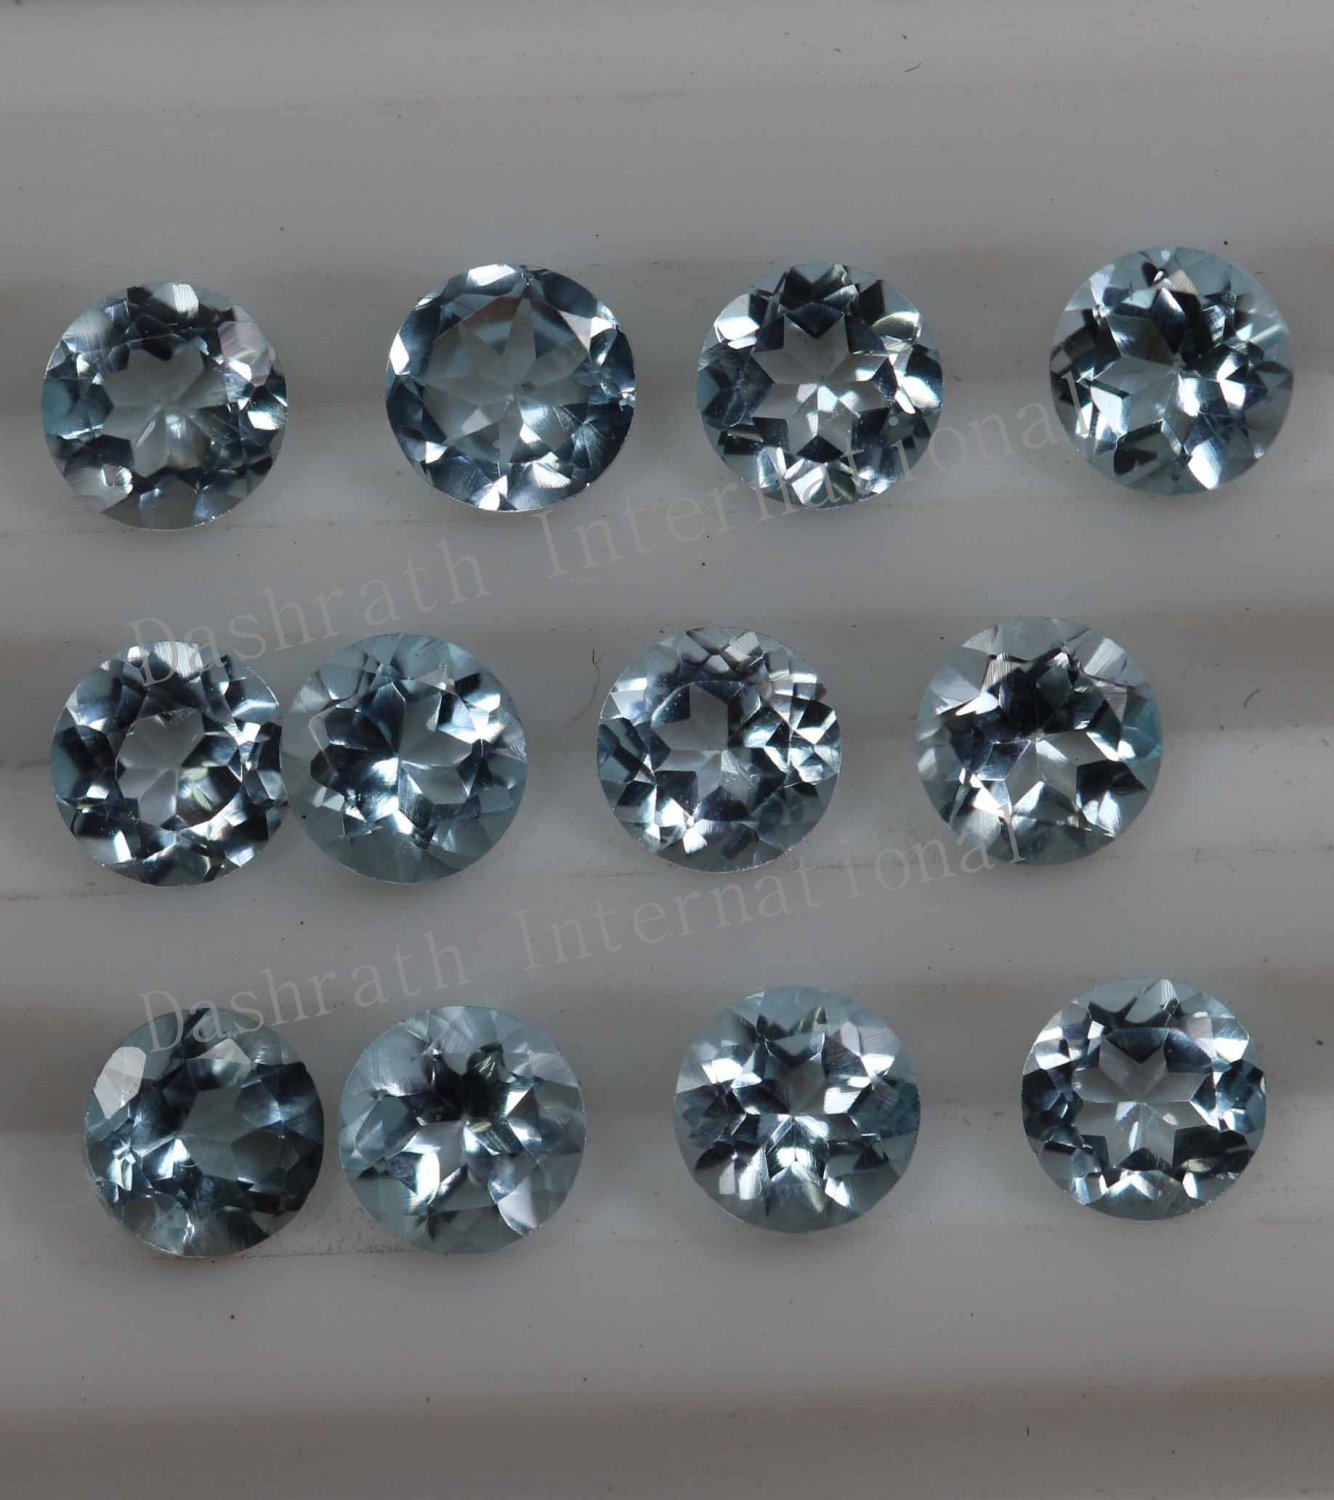 4mmNatural Sky Blue Topaz Faceted Cut Round 100 Pieces Lot Blue Color  Top Quality Loose Gemstone